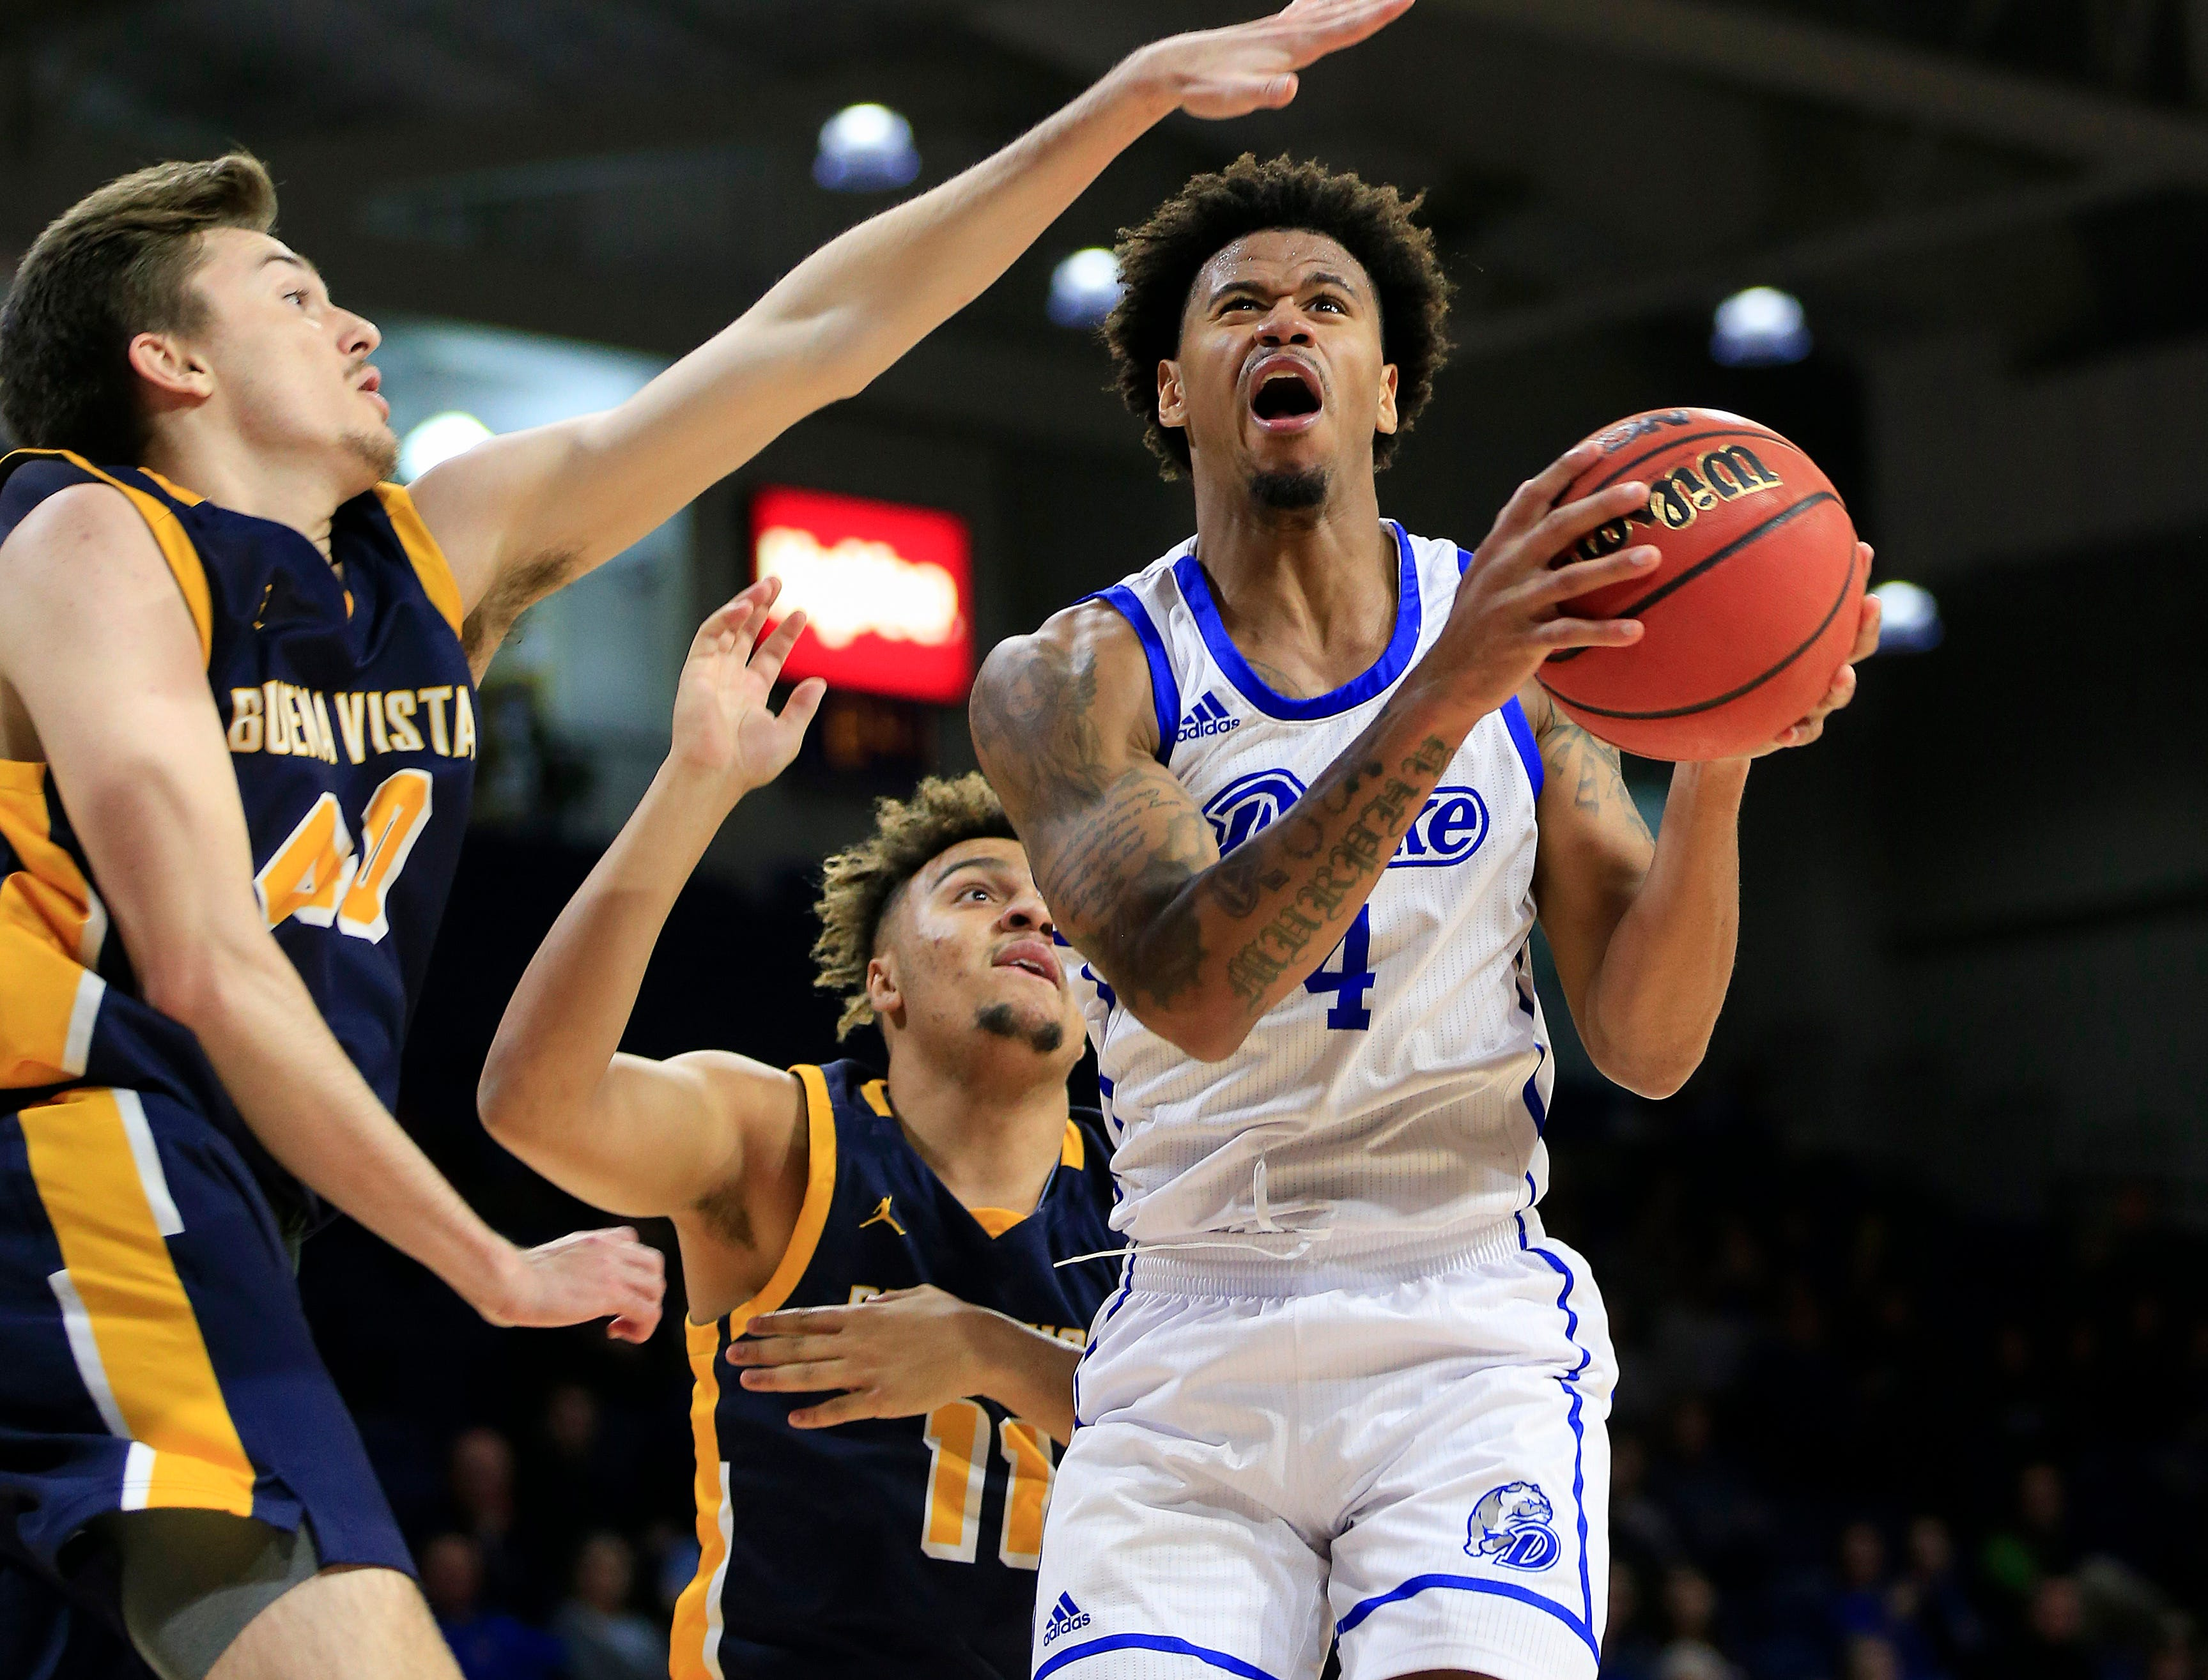 Anthony Murphy of Drake drives to the basket during a game against Buena Vista at the Knapp center Thursday, Nov. 8, 2018.